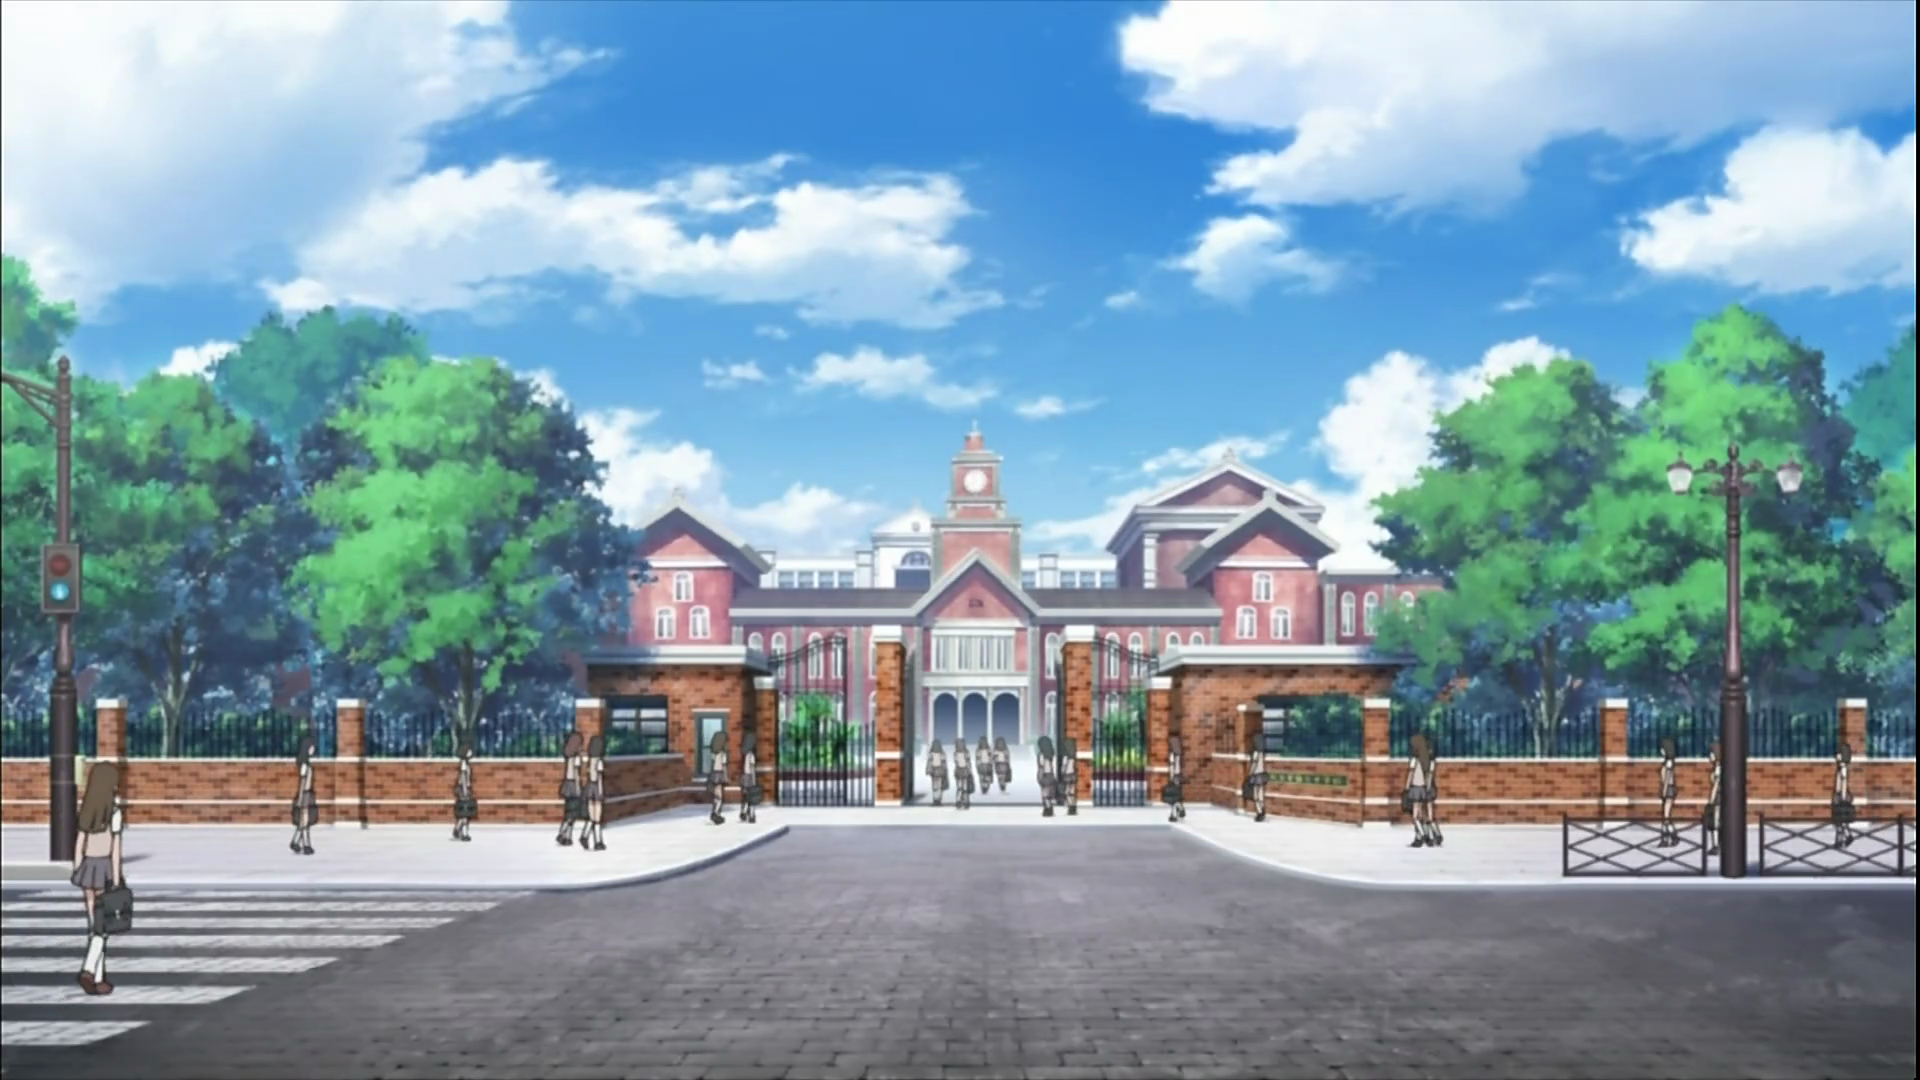 10,000 Anime Fans Voted for the Fictional Schools They Want to Study At haruhichan.com Tokiwadai Middle School Toaru Majutsu no Index  Toaru Kagaku no Railgun